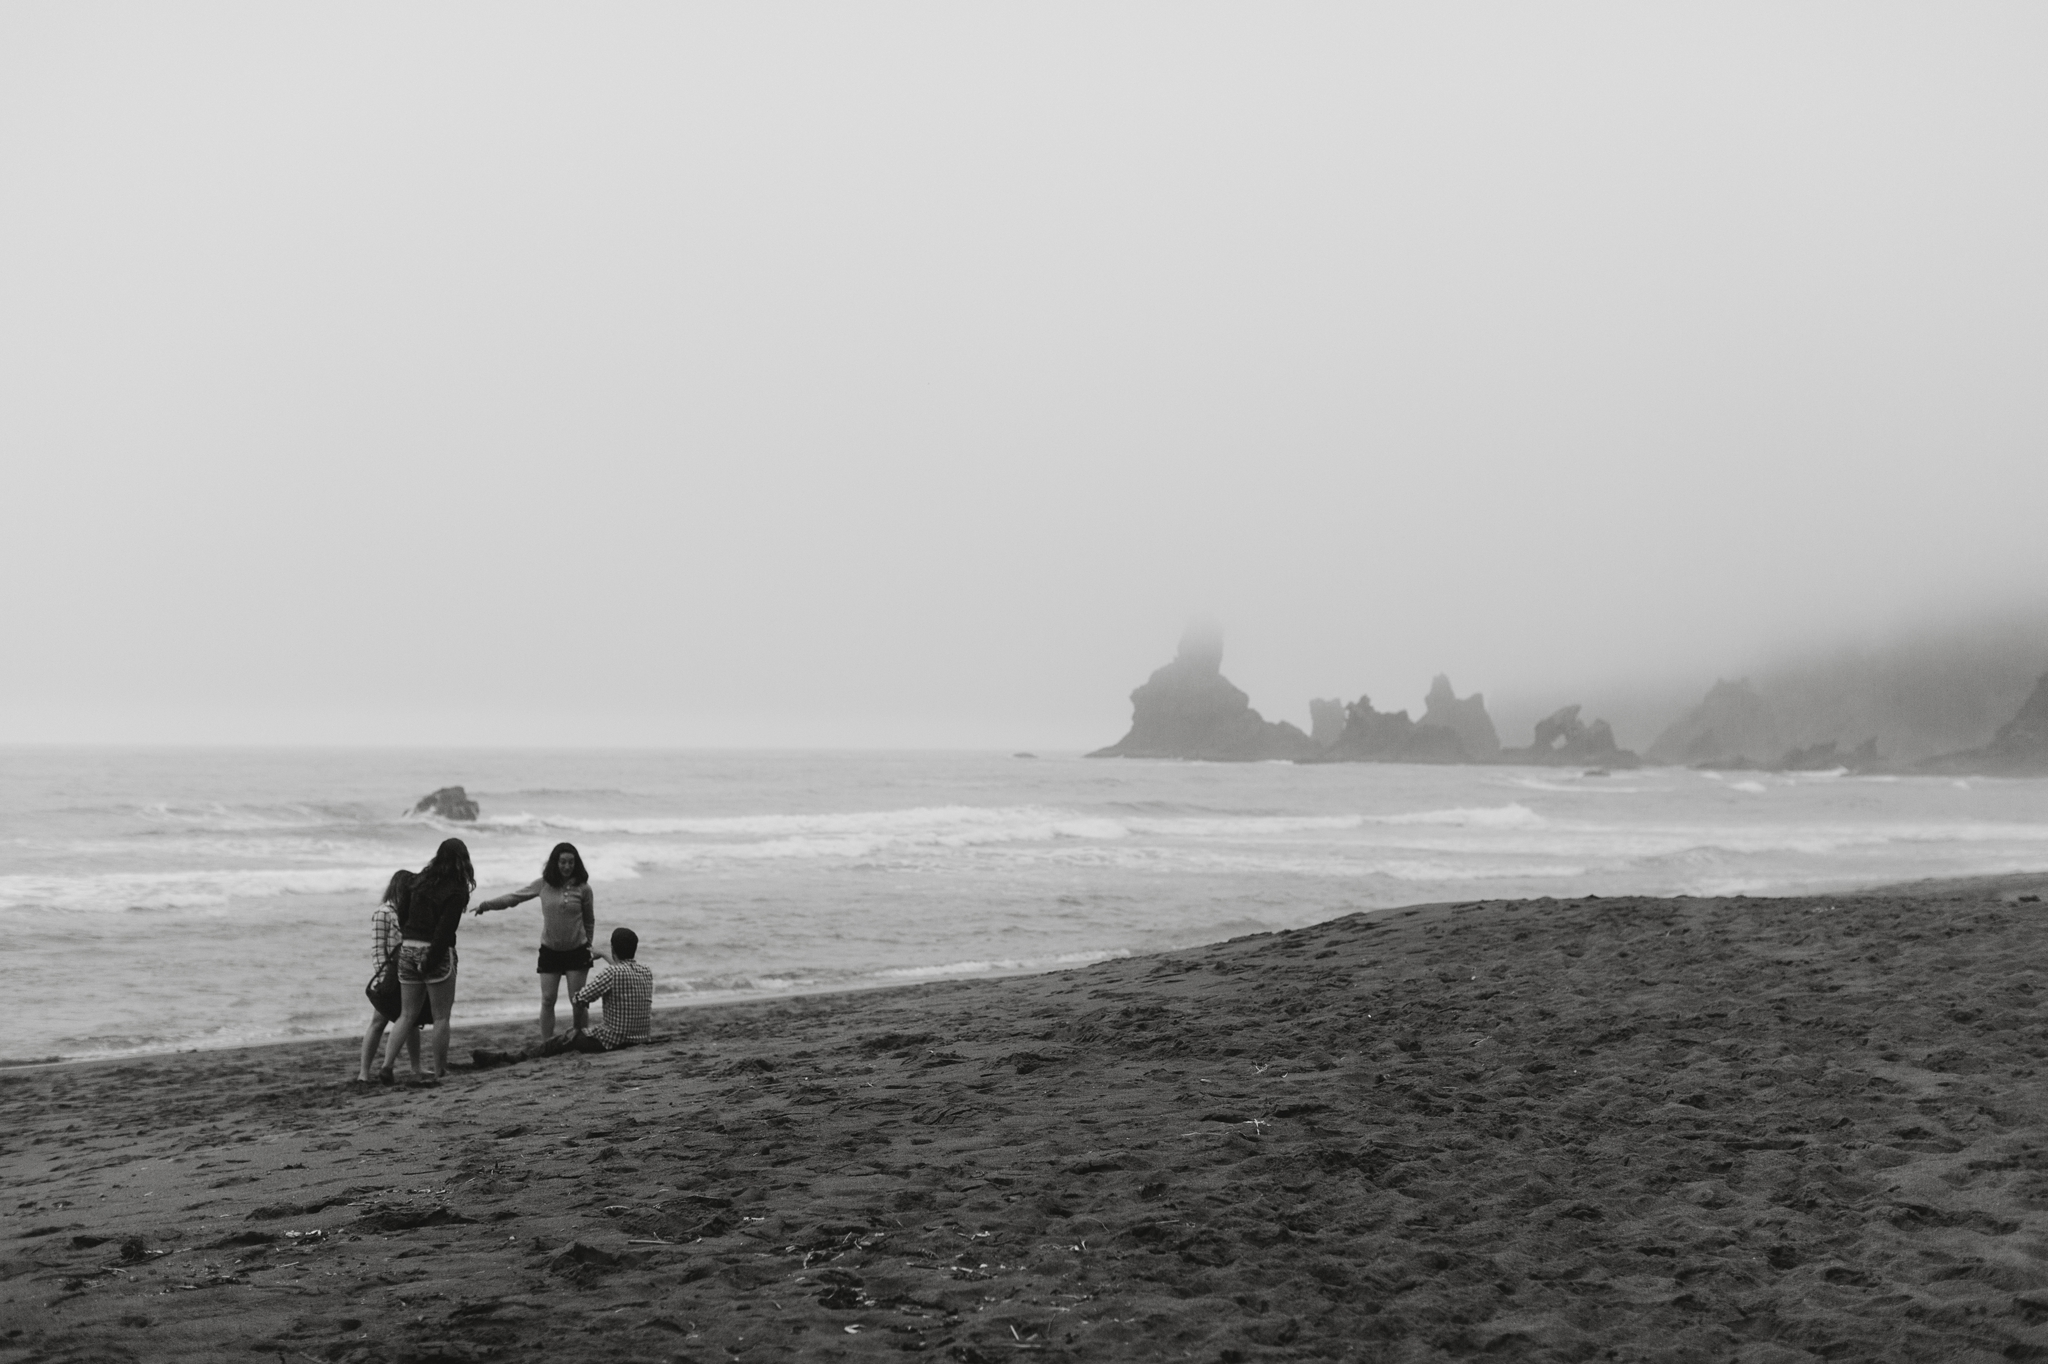 Camping on Cold Beaches 20.jpg